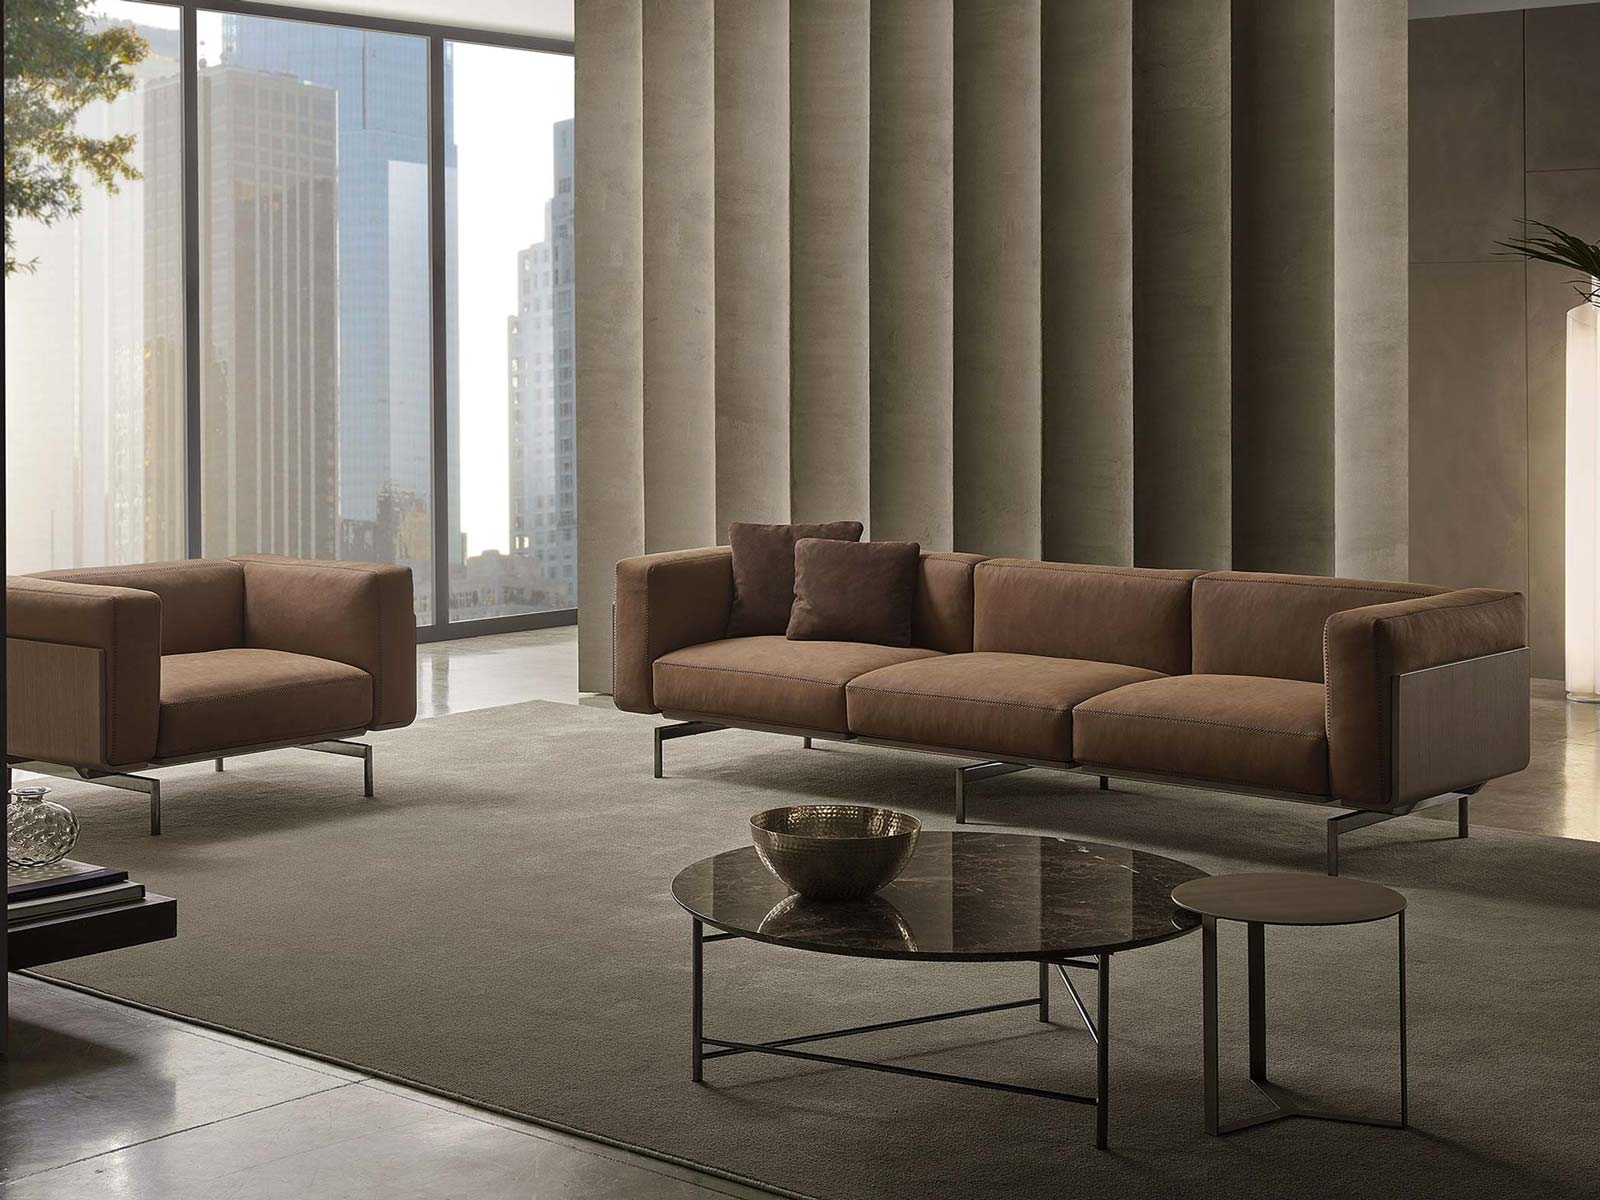 Design linear sofa leather wooden panels L-sofa